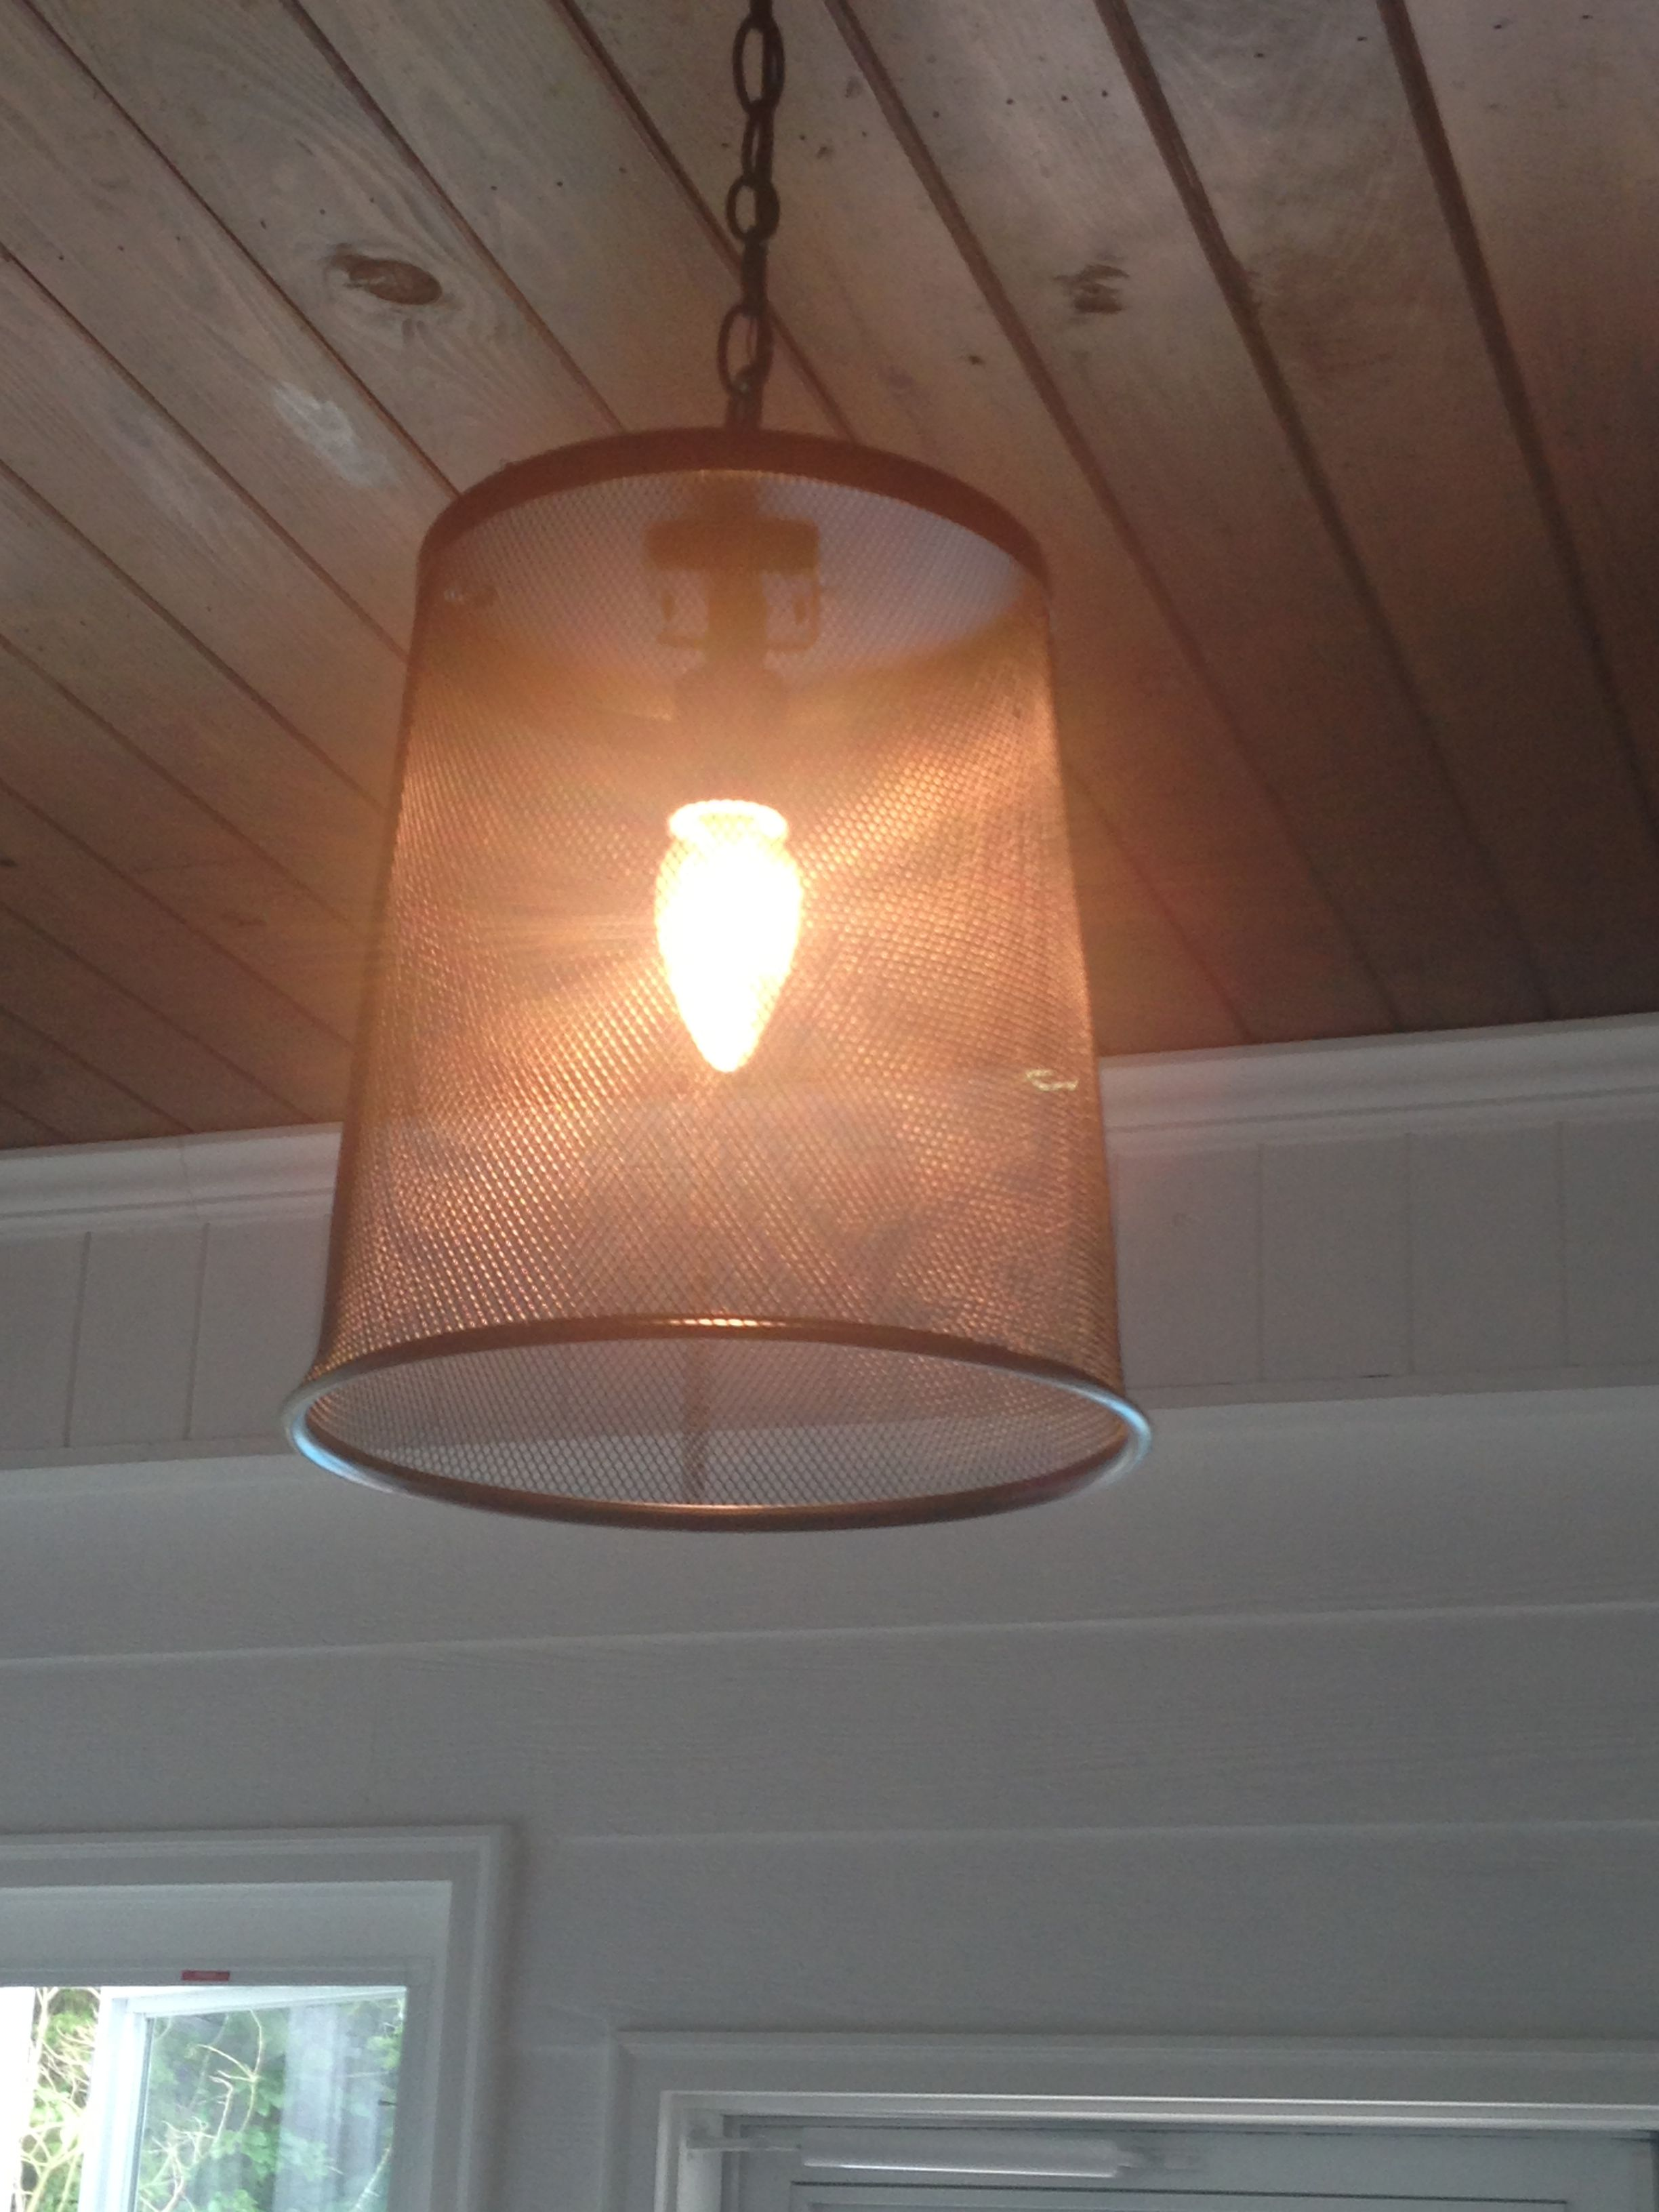 4 Trash Can From Big Lots And Repurposed Light Fixture Equals New Porch Light Light Fixtures Porch Lighting Porch Decorating